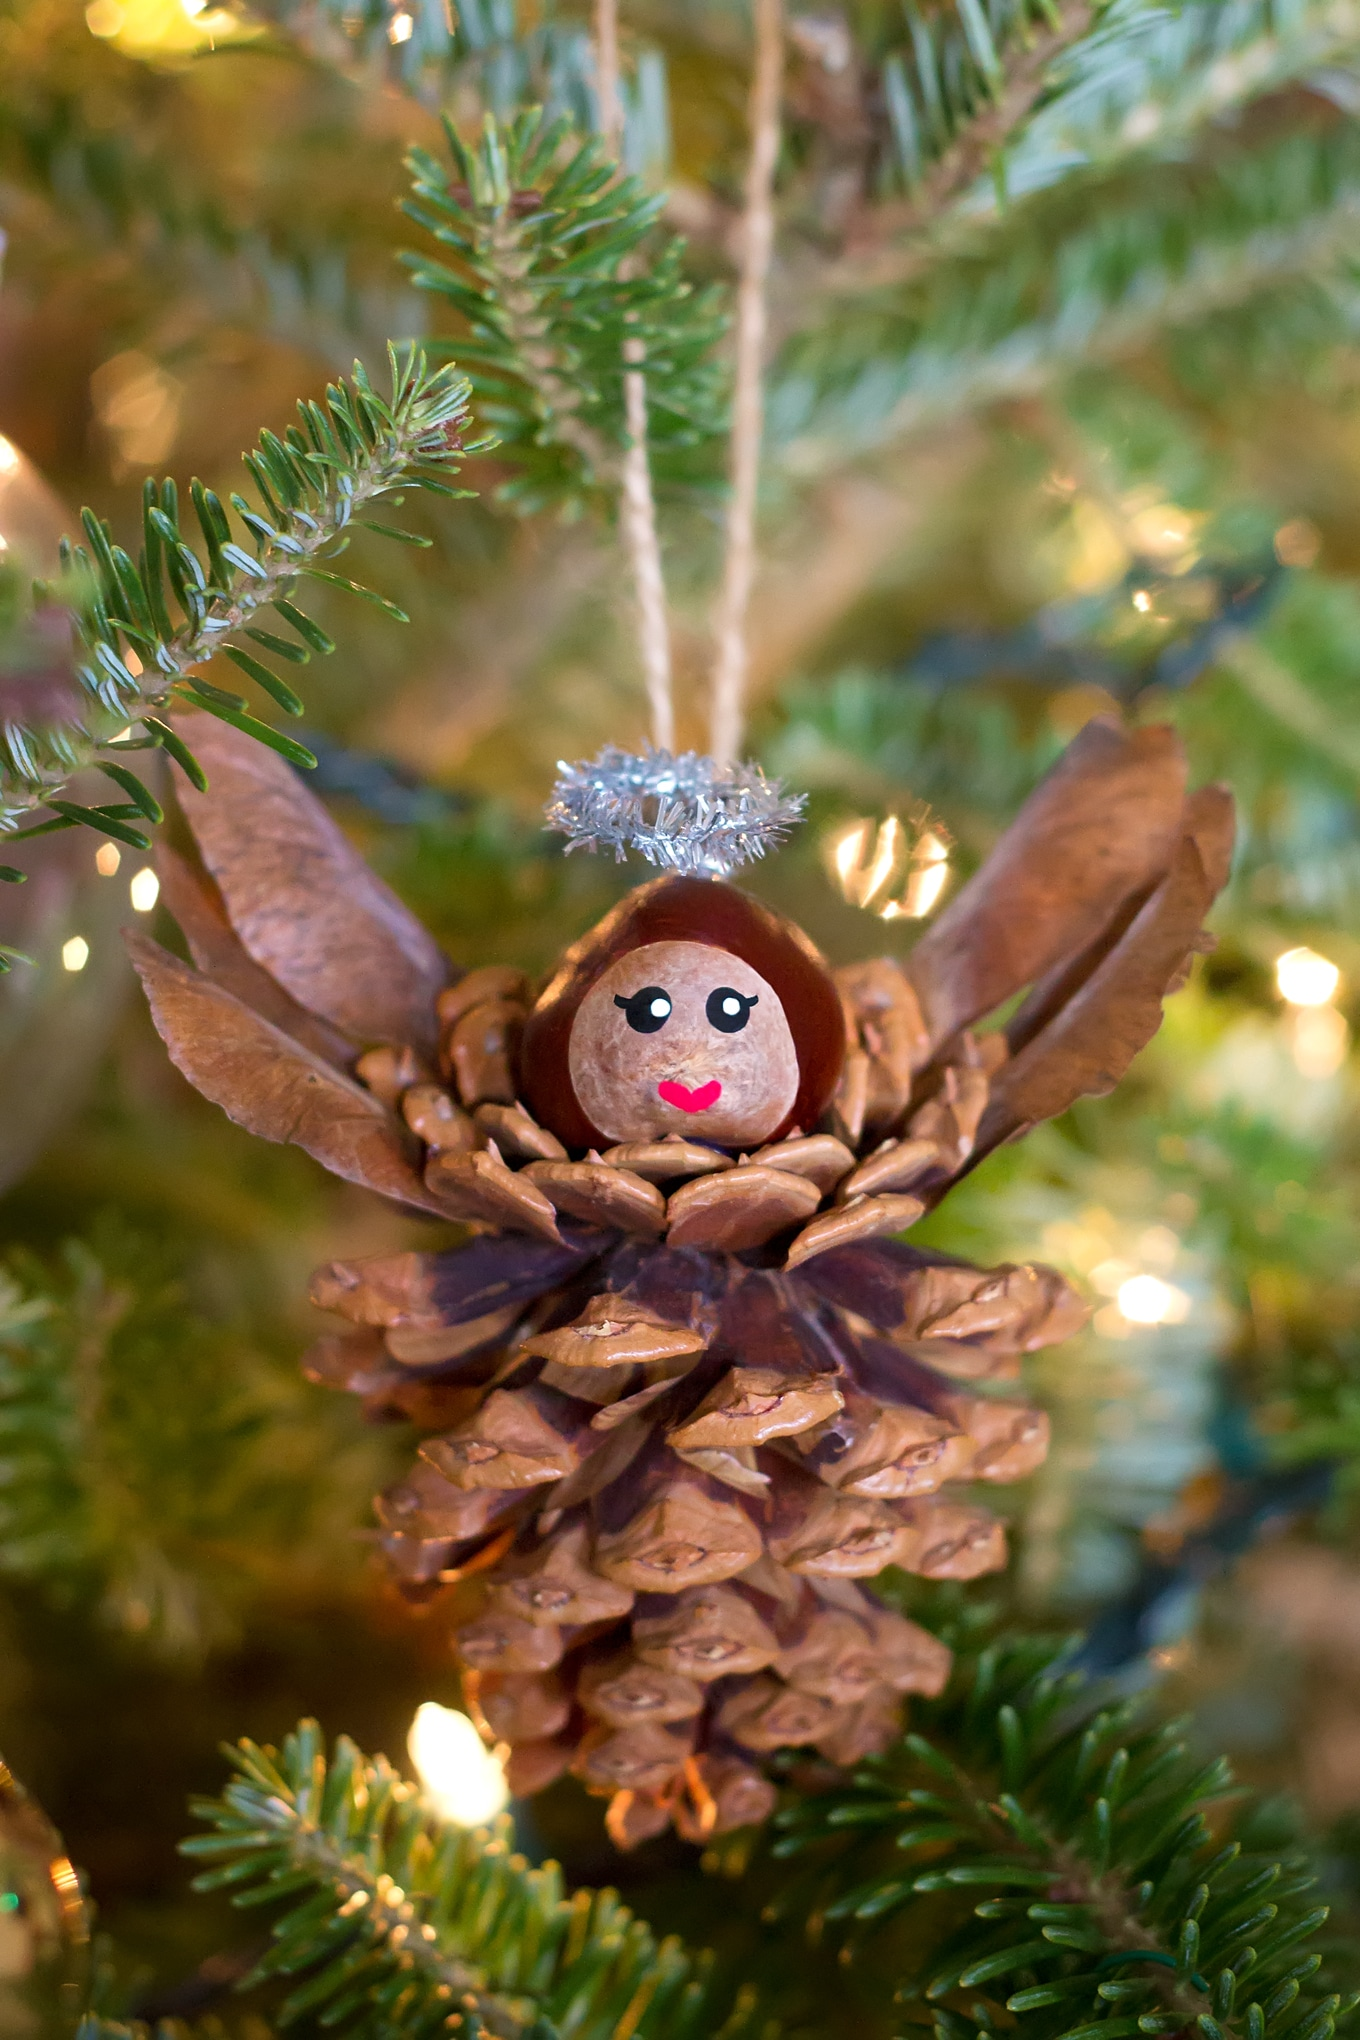 Pinecone Angel Ornaments are a charming Christmas nature craft for kids. This ornament is simple, sweet, and fun for crafters of all ages.